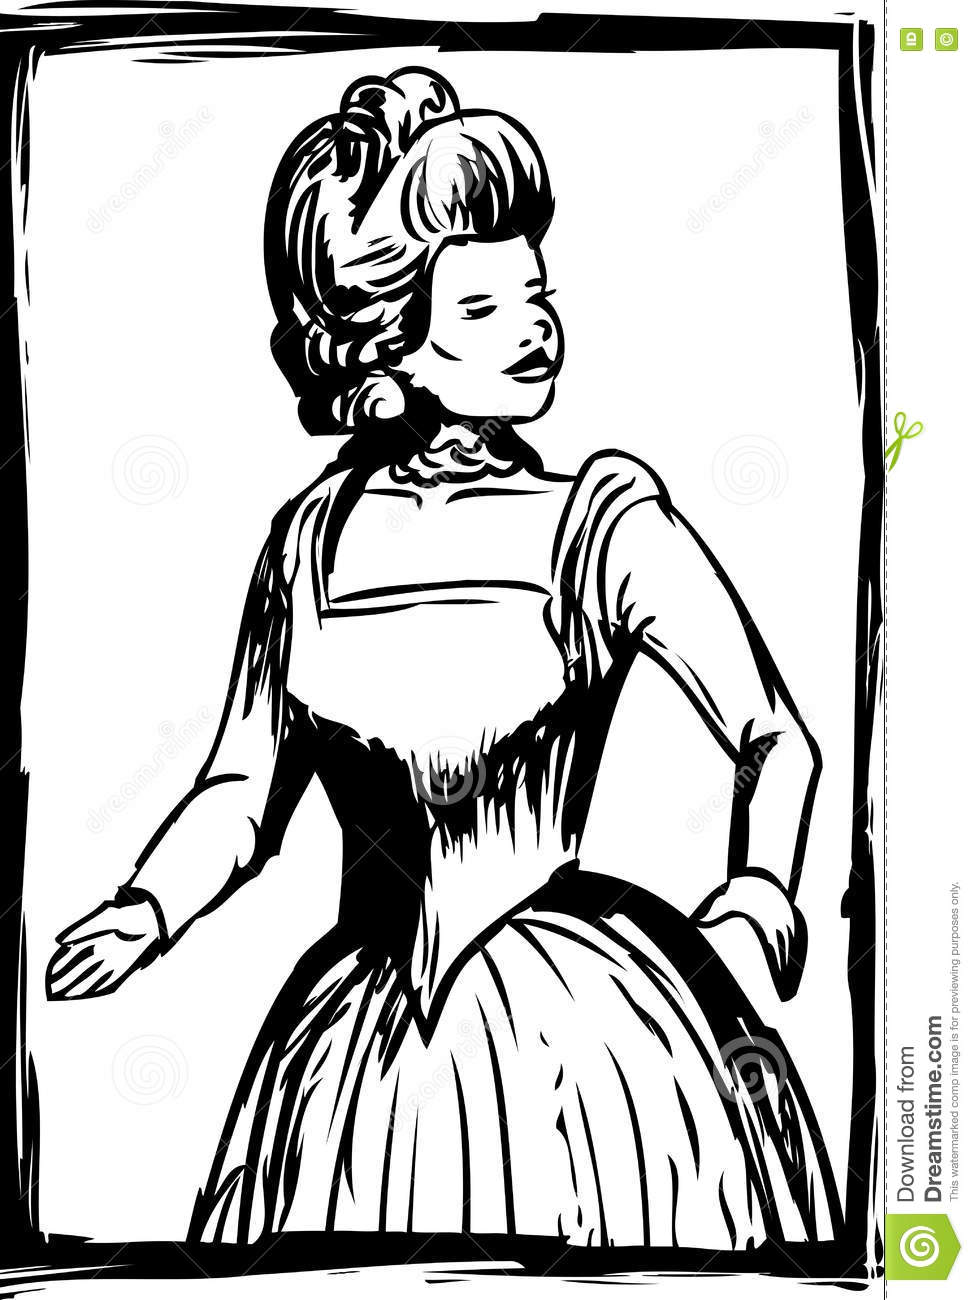 Outline Of Woman In 18th Century Dress Stock Illustration.